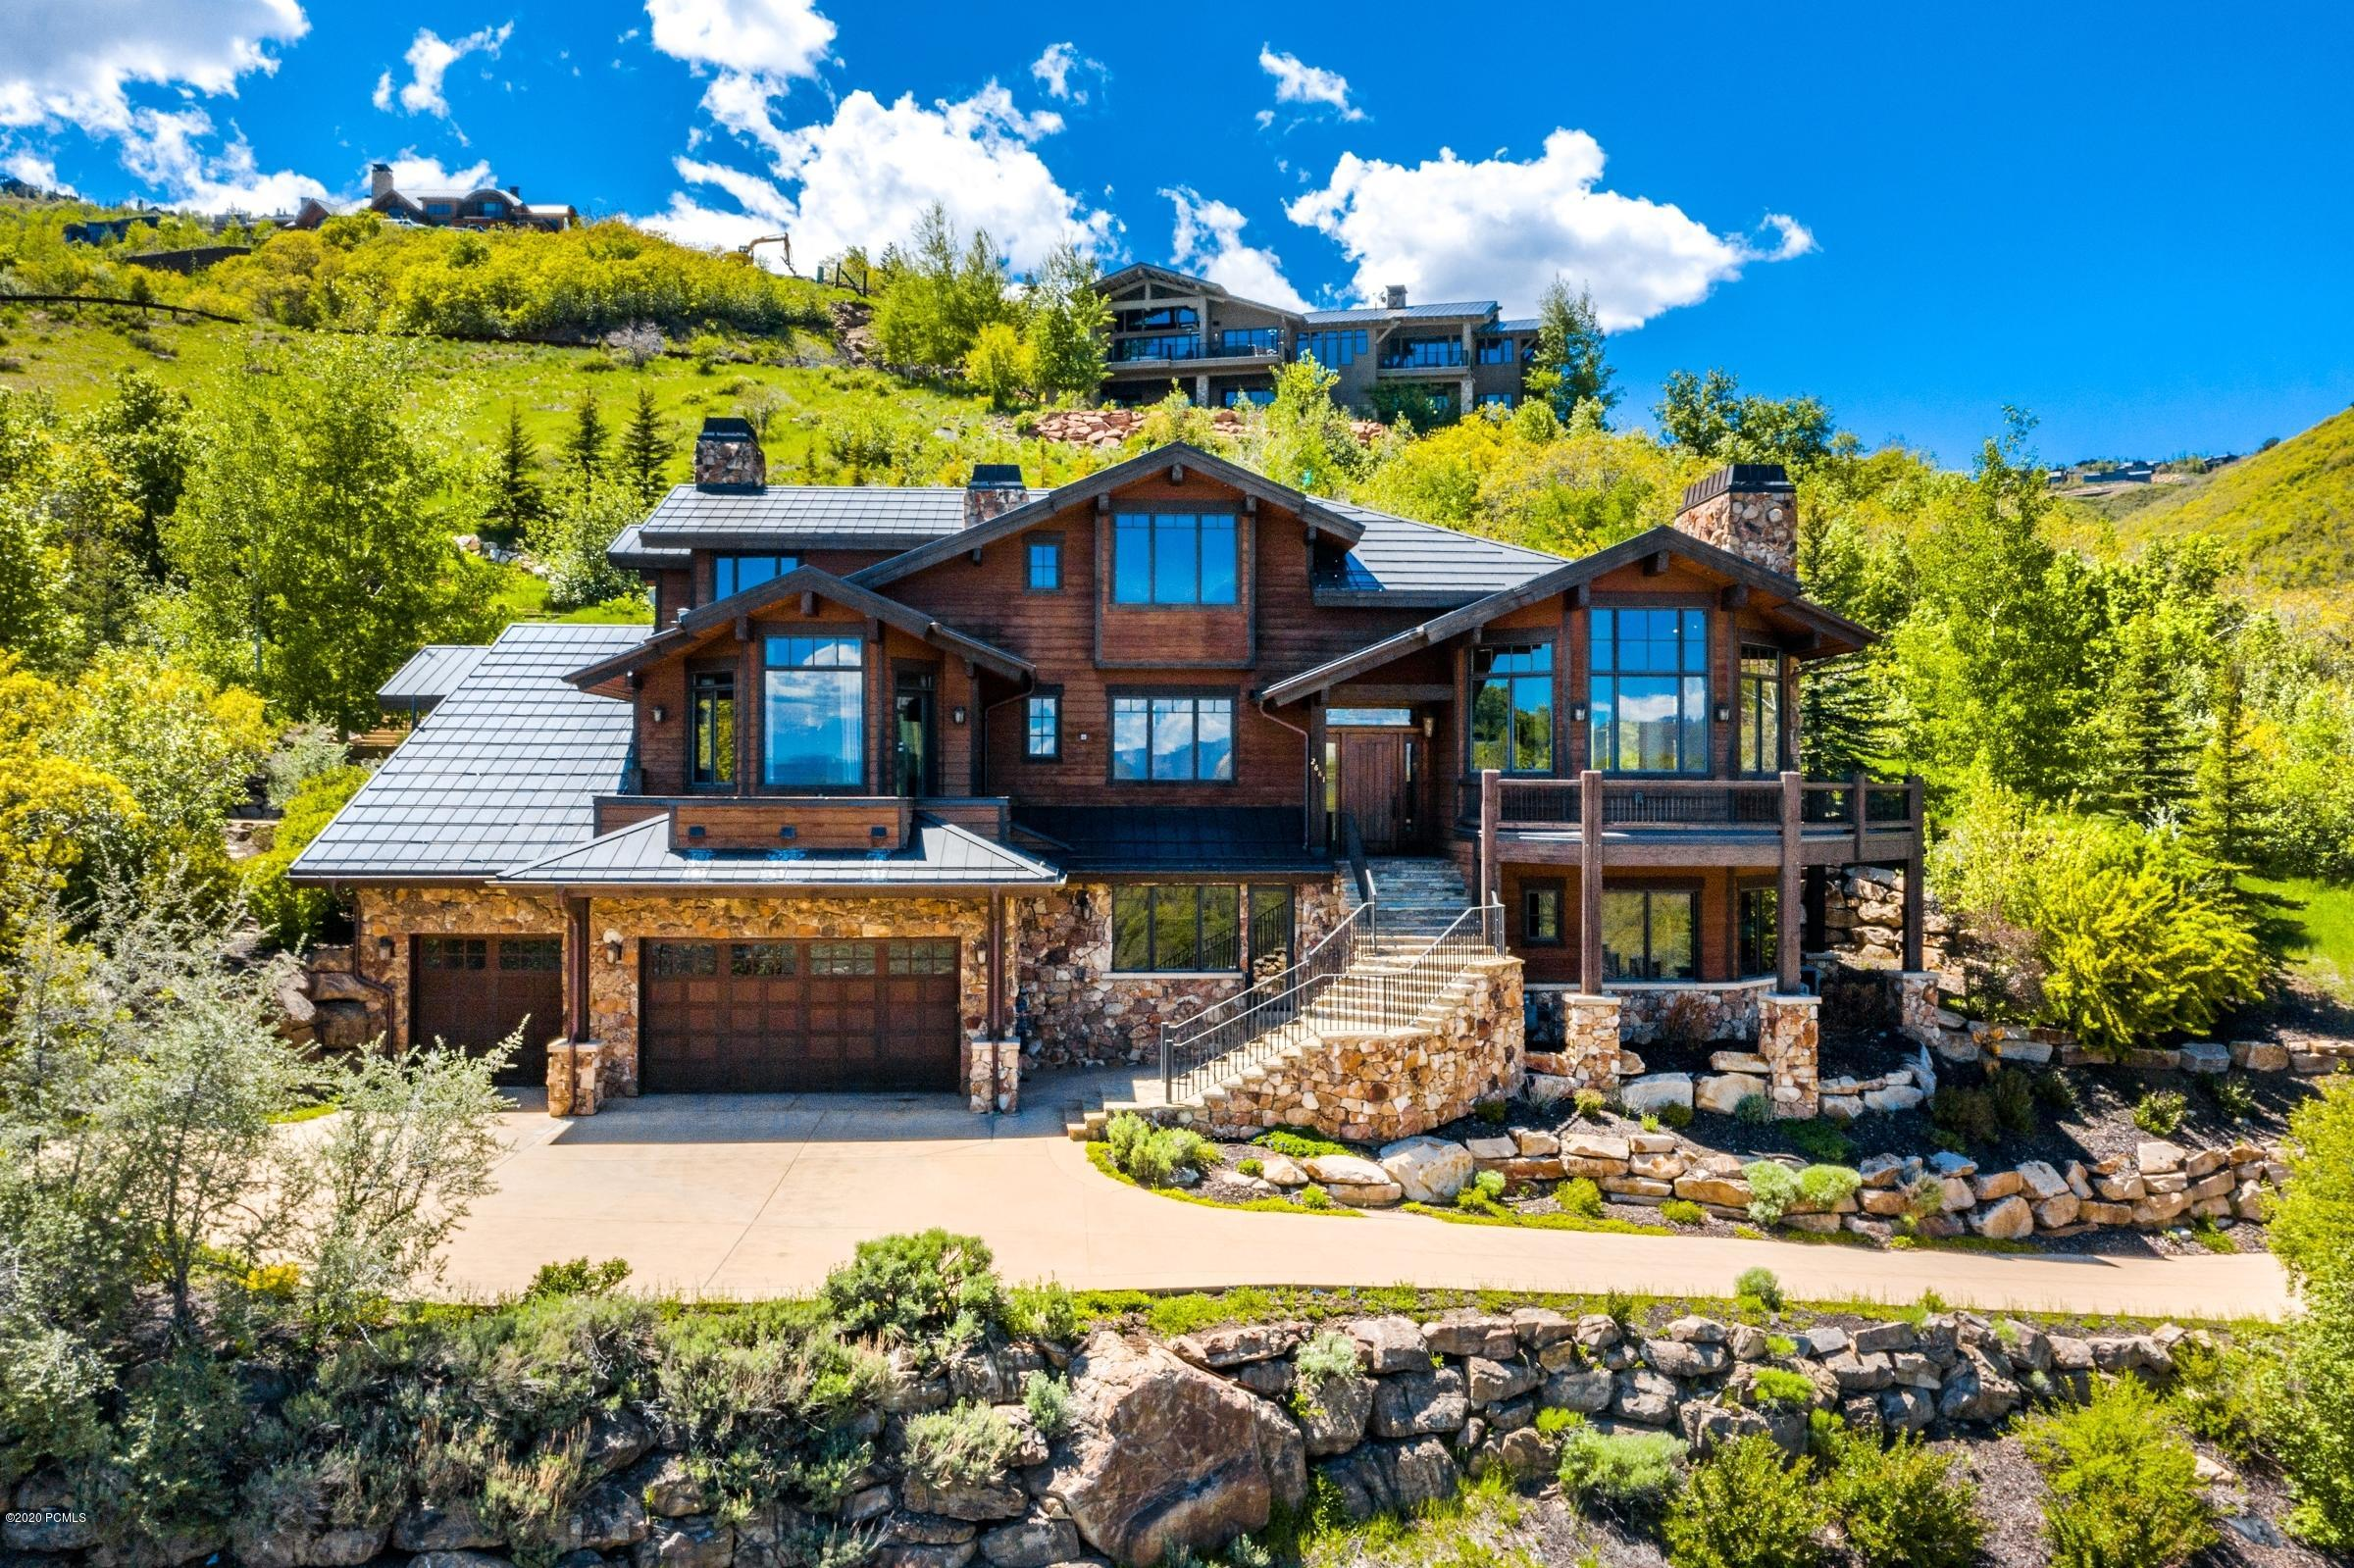 2681 Deer Hollow Road, Park City, Utah 84060, 5 Bedrooms Bedrooms, ,7 BathroomsBathrooms,Single Family,For Sale,Deer Hollow,12002096